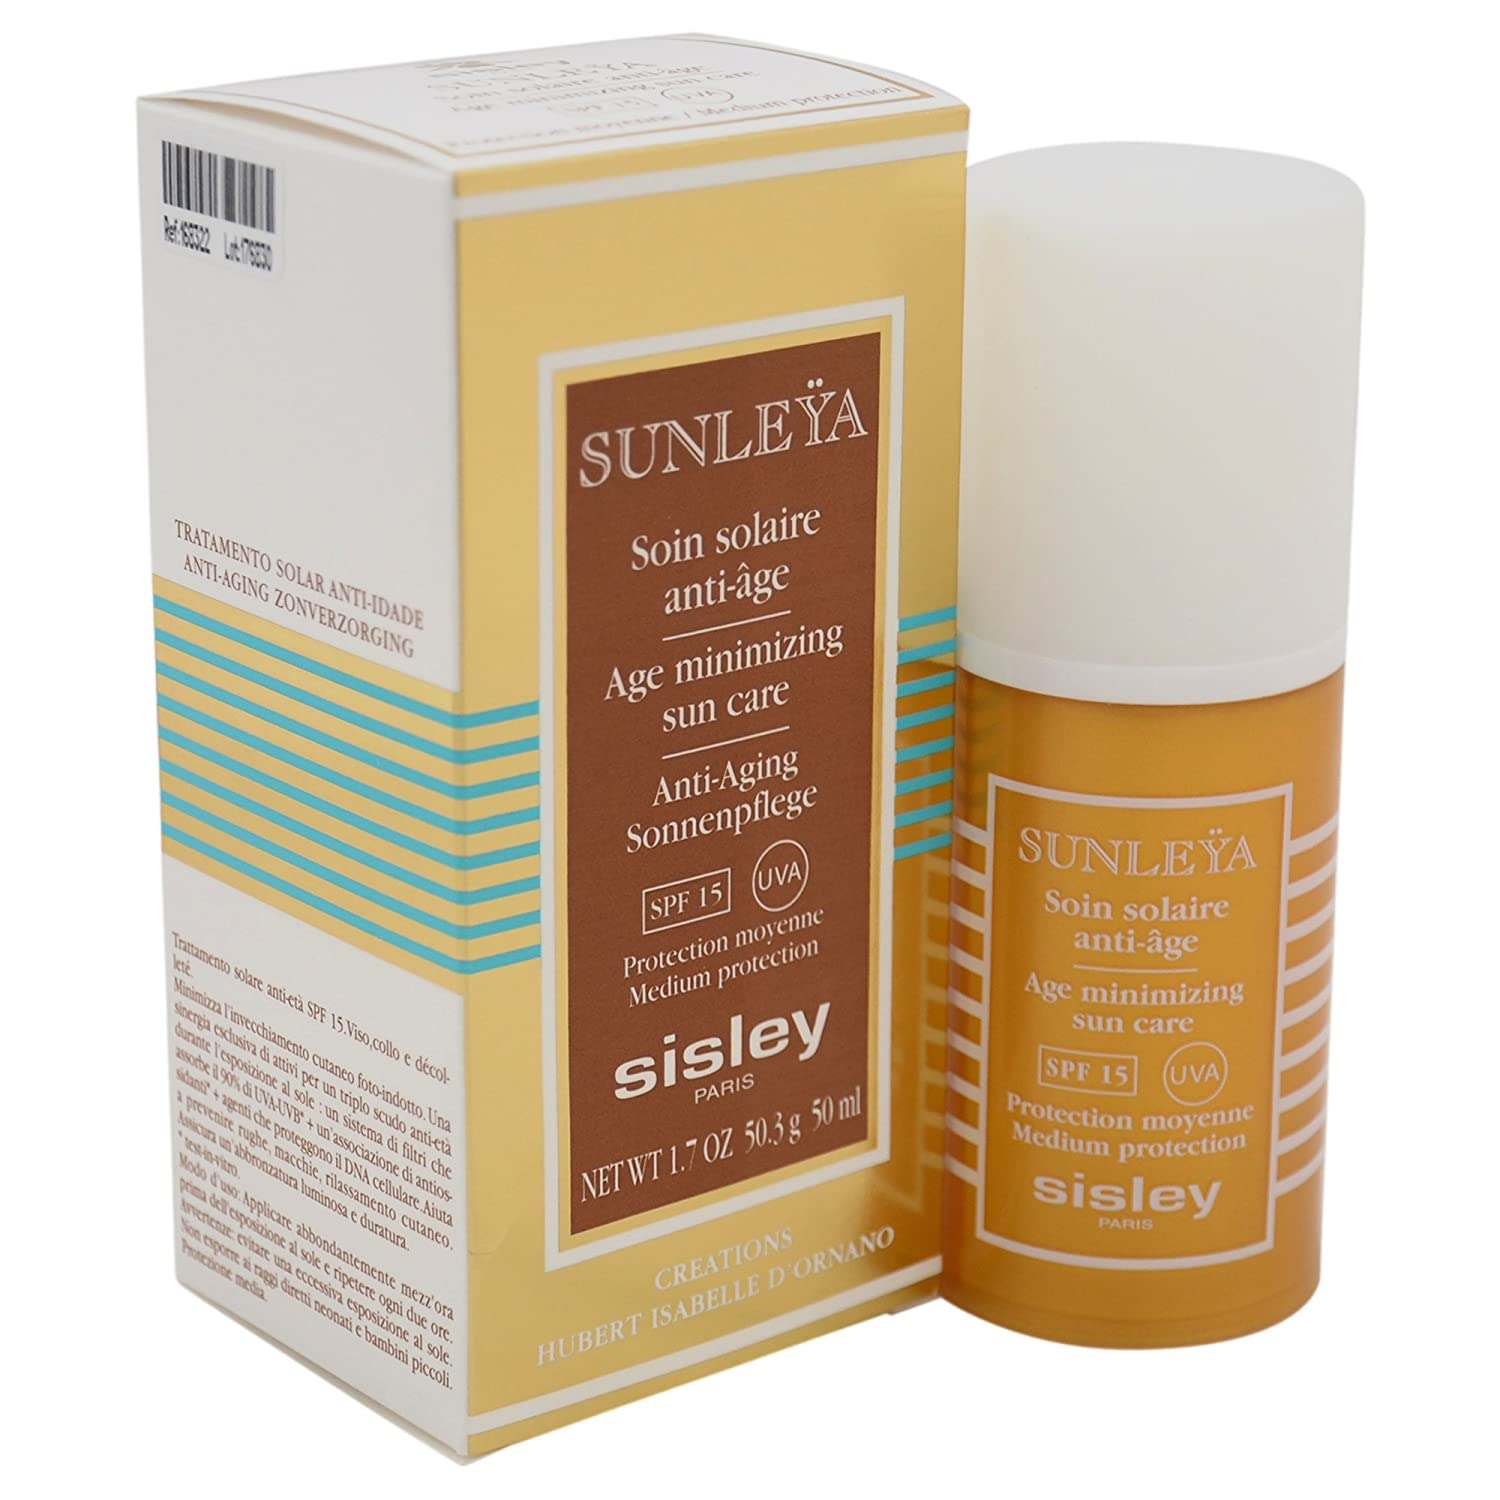 Amazon.com: Sisley Sunleya Age Minimizing SPF15 Medium ...